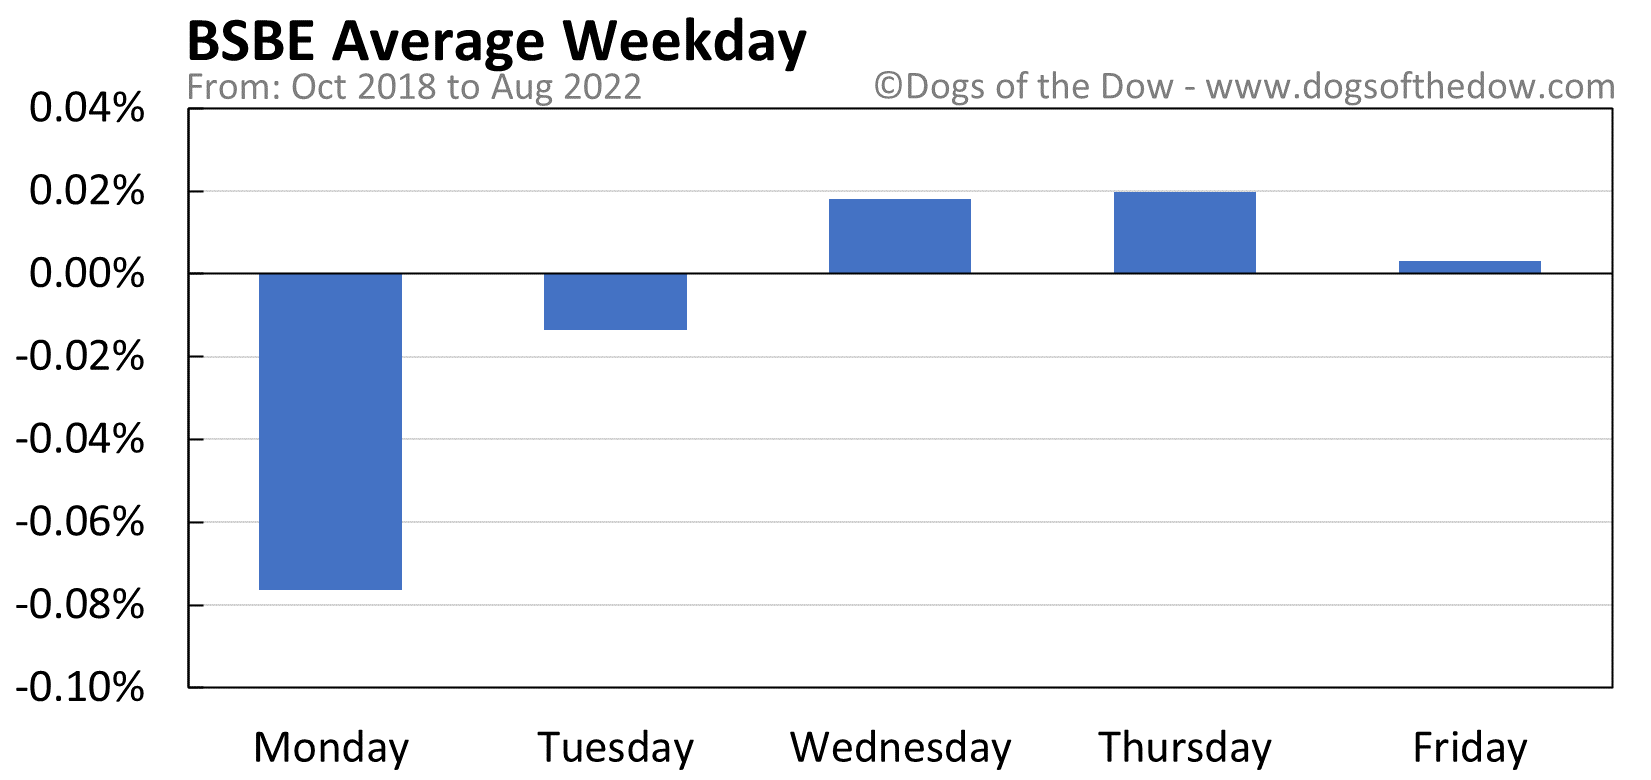 BSBE average weekday chart